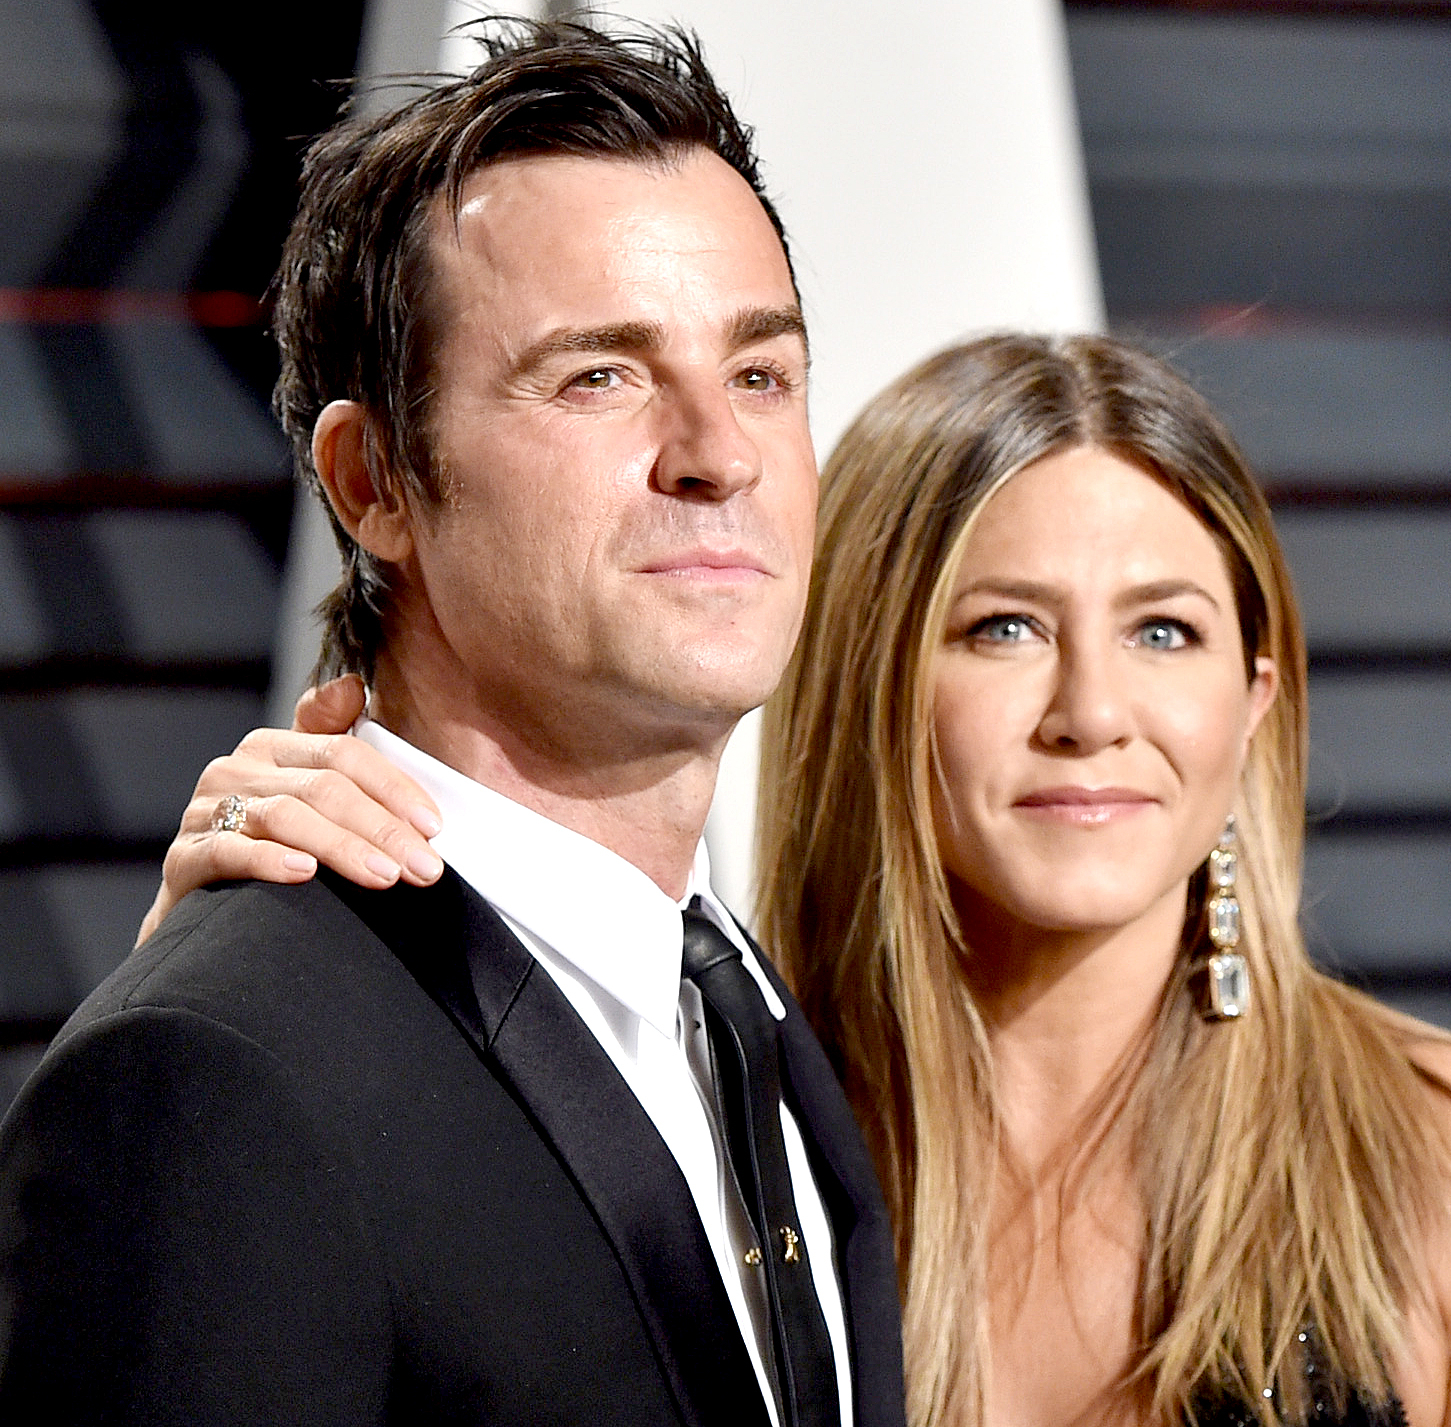 Justin Theroux and Jennifer Aniston attend the 2017 Vanity Fair Oscar Party hosted by Graydon Carter at Wallis Annenberg Center for the Performing Arts on February 26, 2017 in Beverly Hills, California.